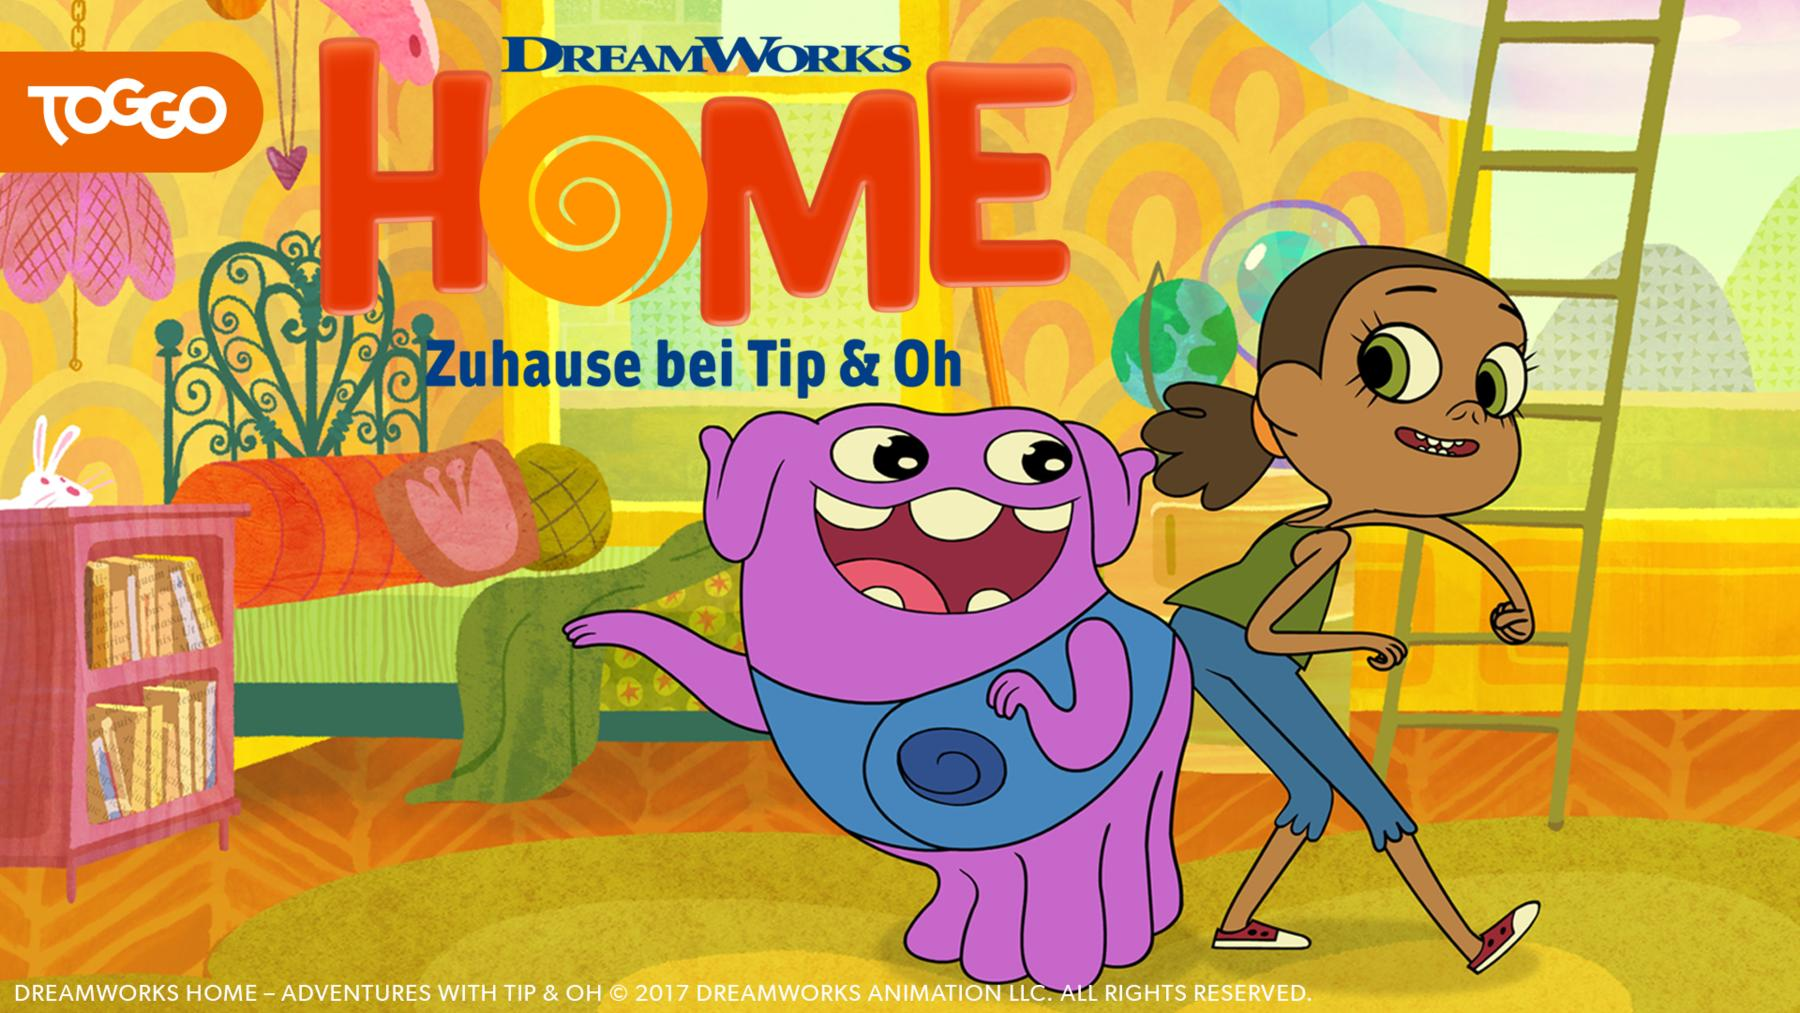 Home - Zuhause bei Tip & Oh